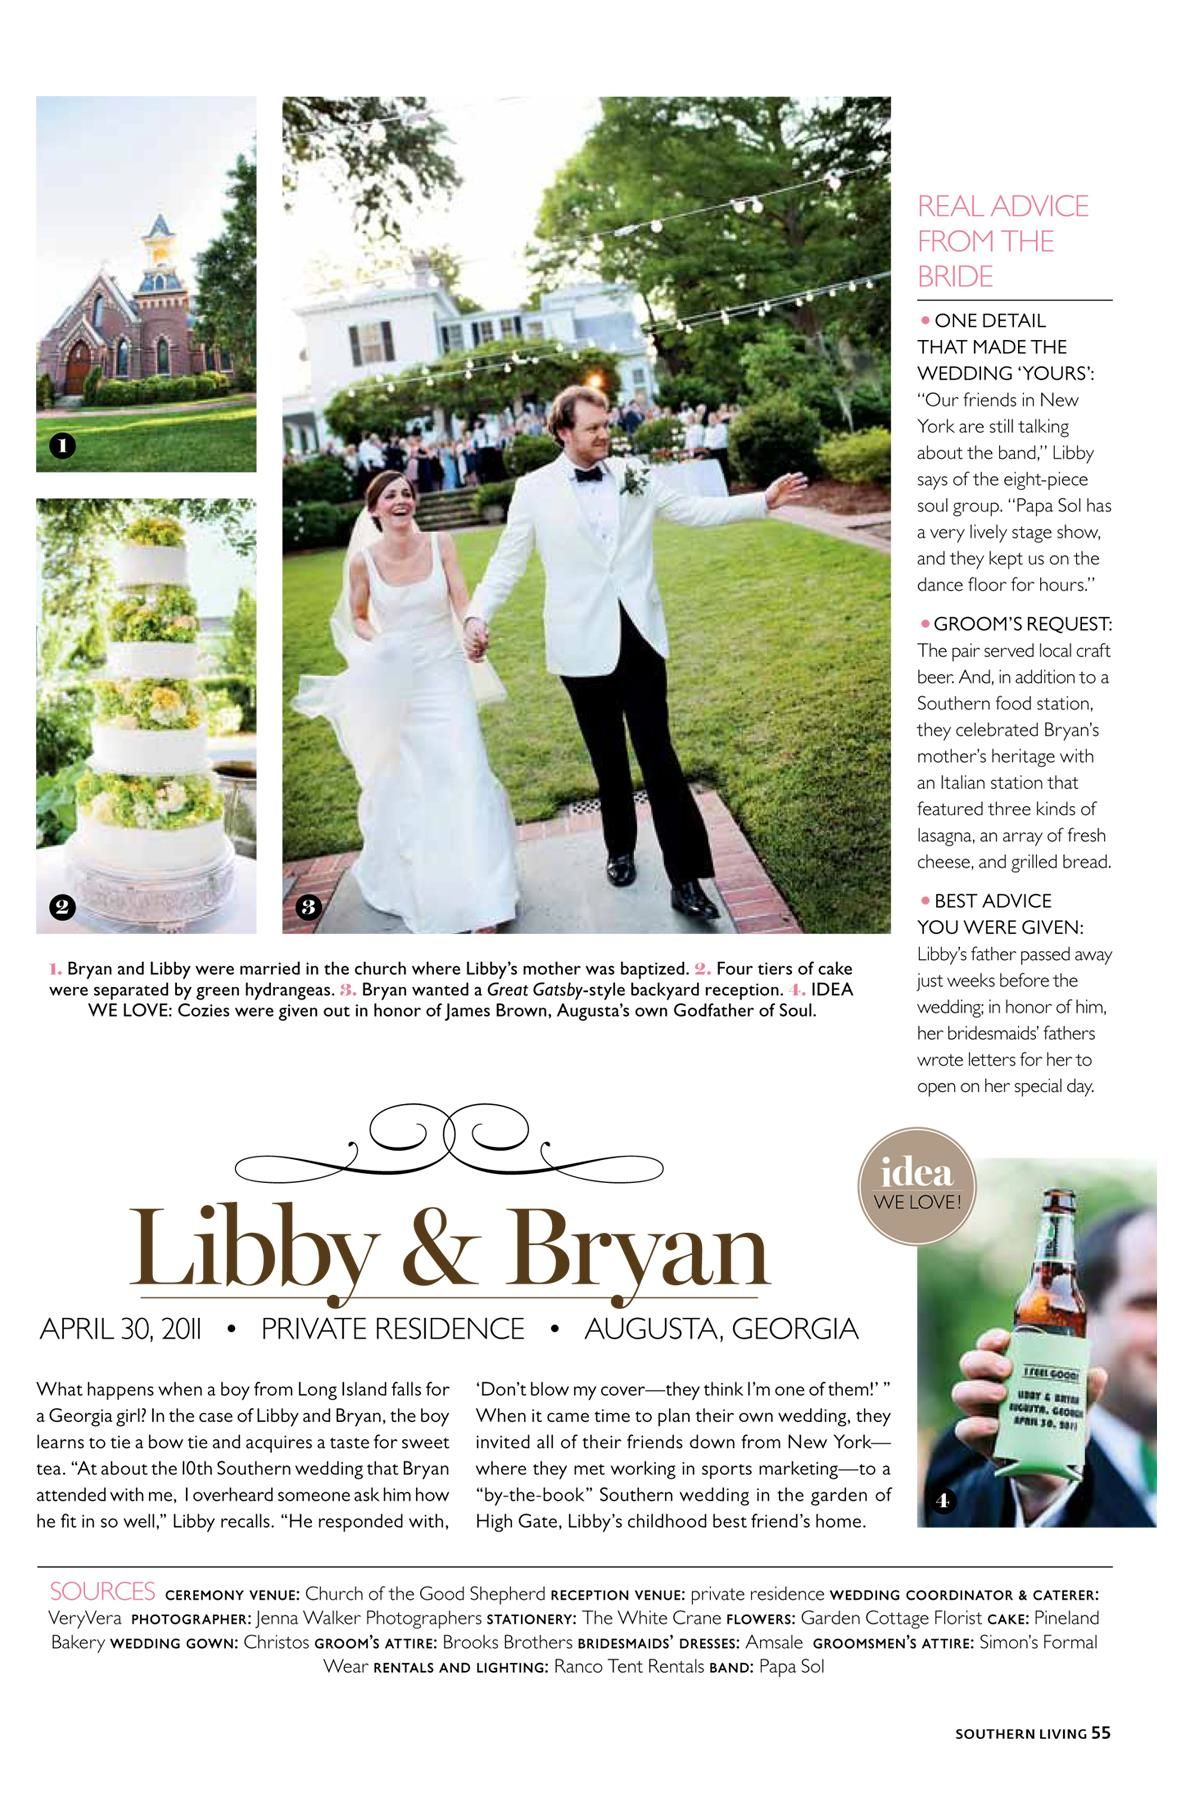 My Cousin And Her Hubby Featured In The Spring 2012 Issue Of Southern Living Weddings Mallory Was The Flower Girl Wedding Stage Show Flower Girl